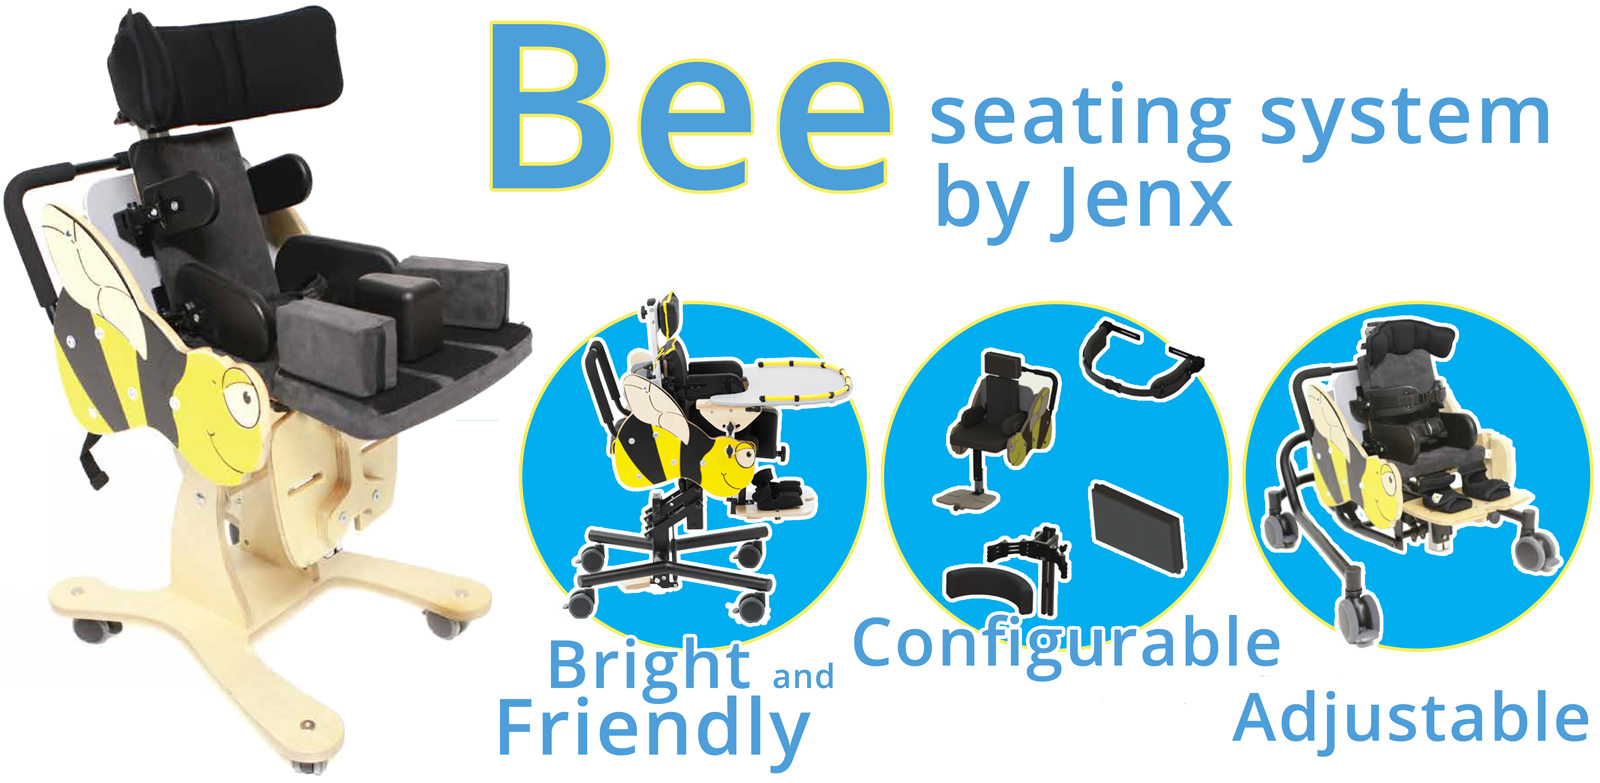 Bee Seating System by Jenx - AC Mobility